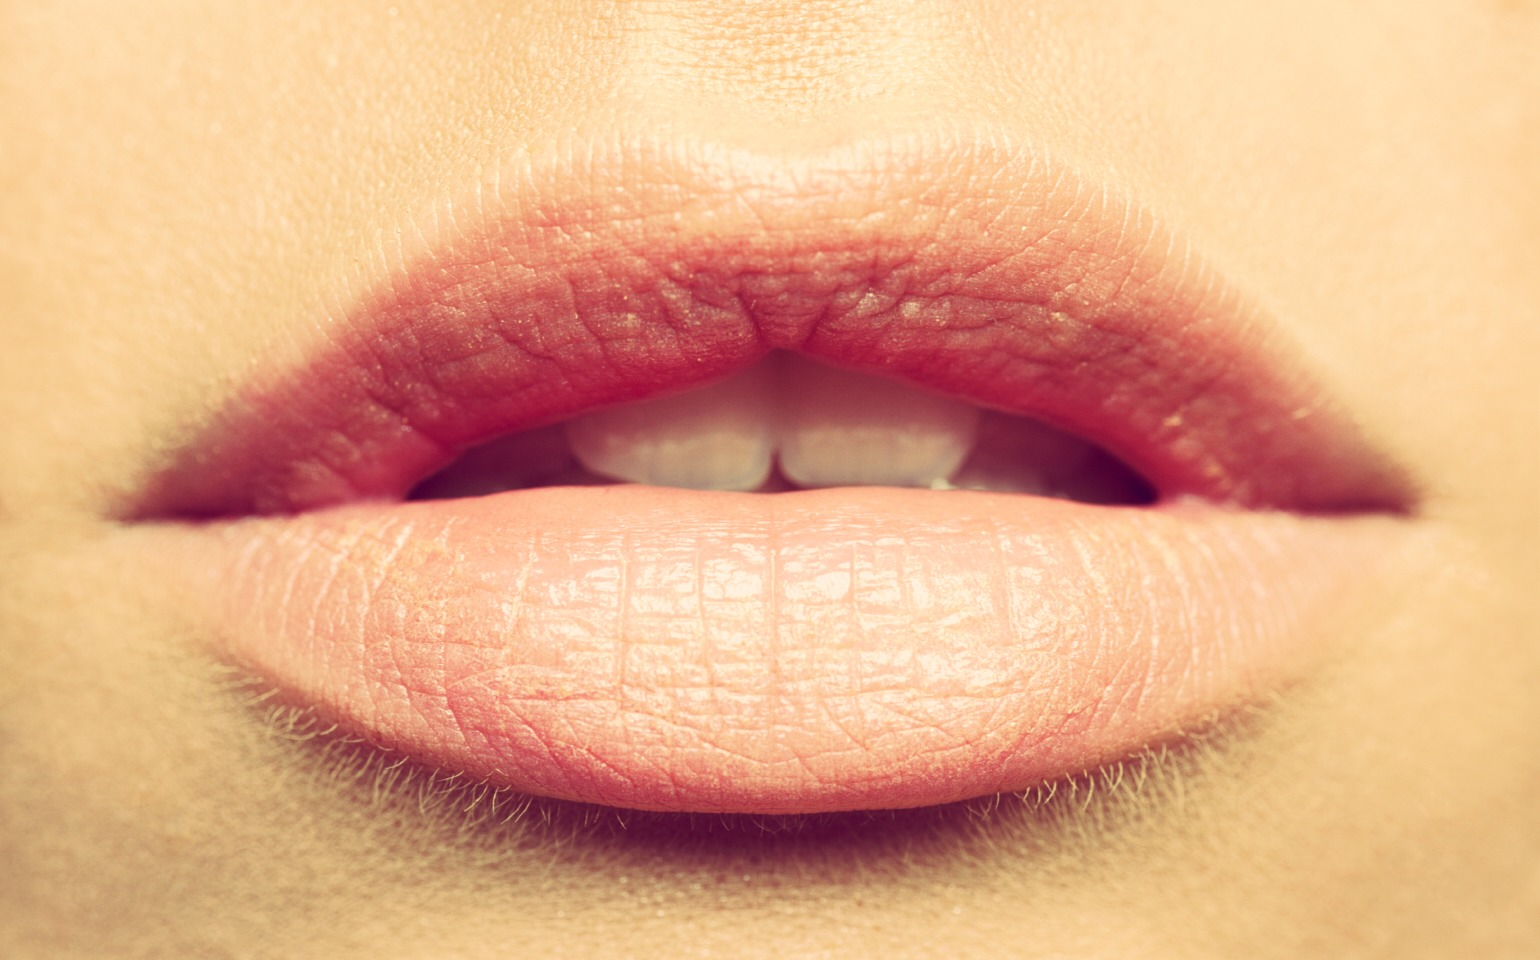 Repeat once or twice a day(depends how quick you want bigger lips) and remember you only need to exfoliate lips every other day. Read on to find out how this method actually makes lips bigger..